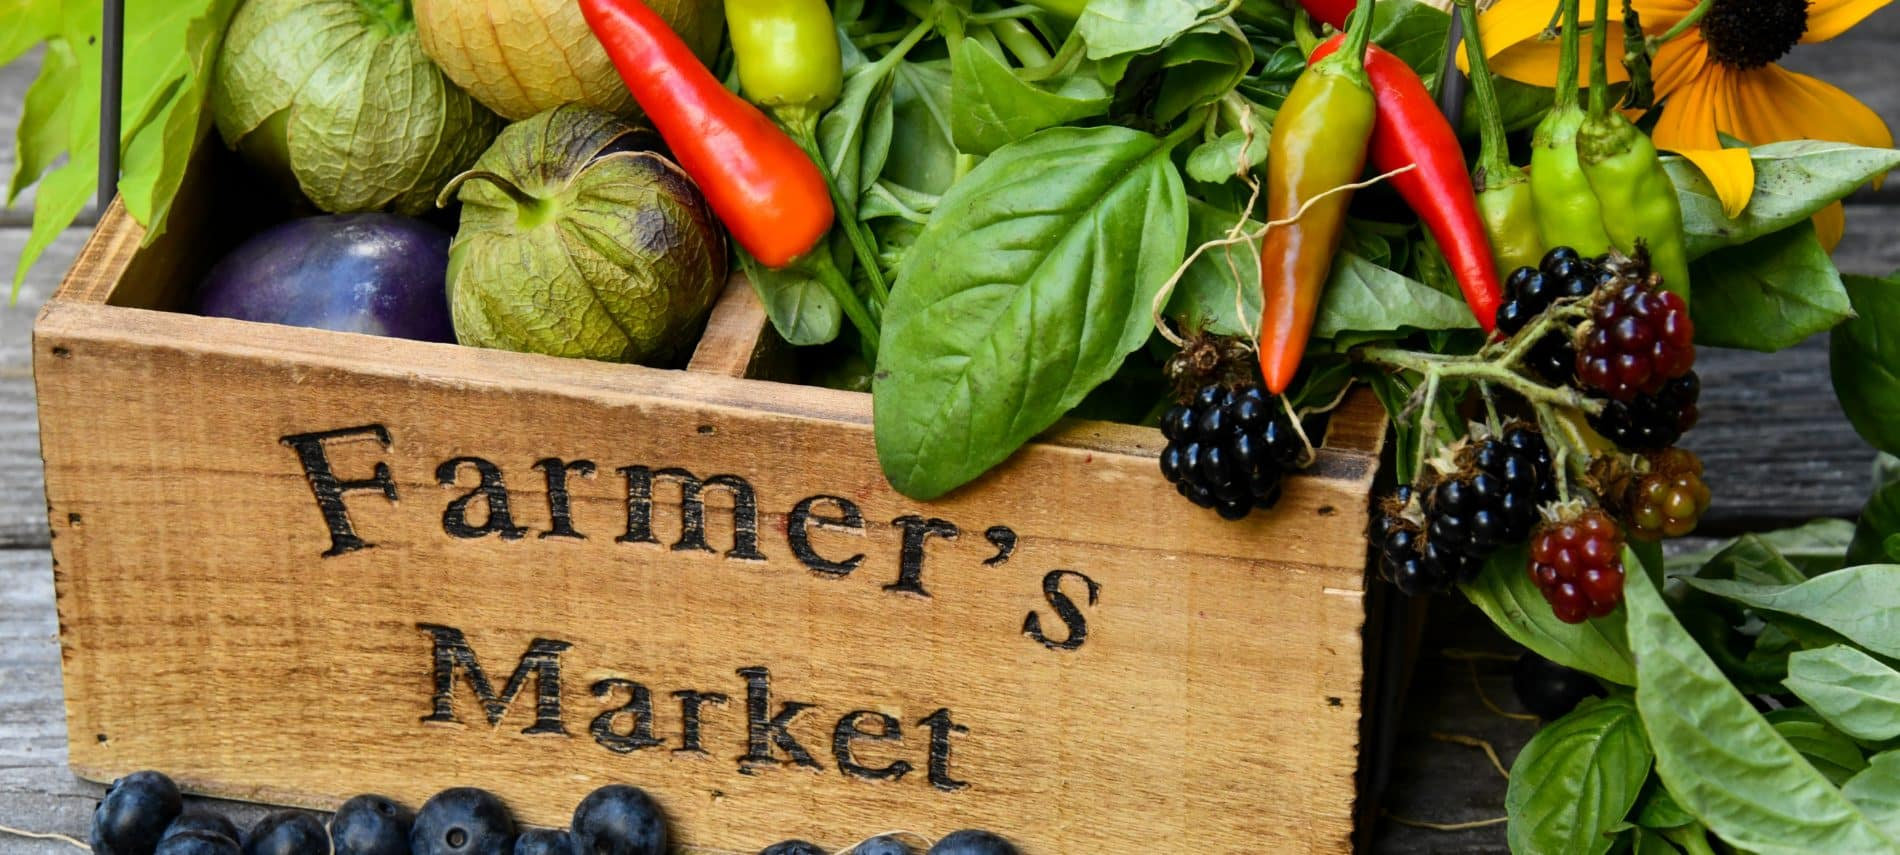 """Wood basket engraved with """"farmers market"""" filled with colorful produce"""